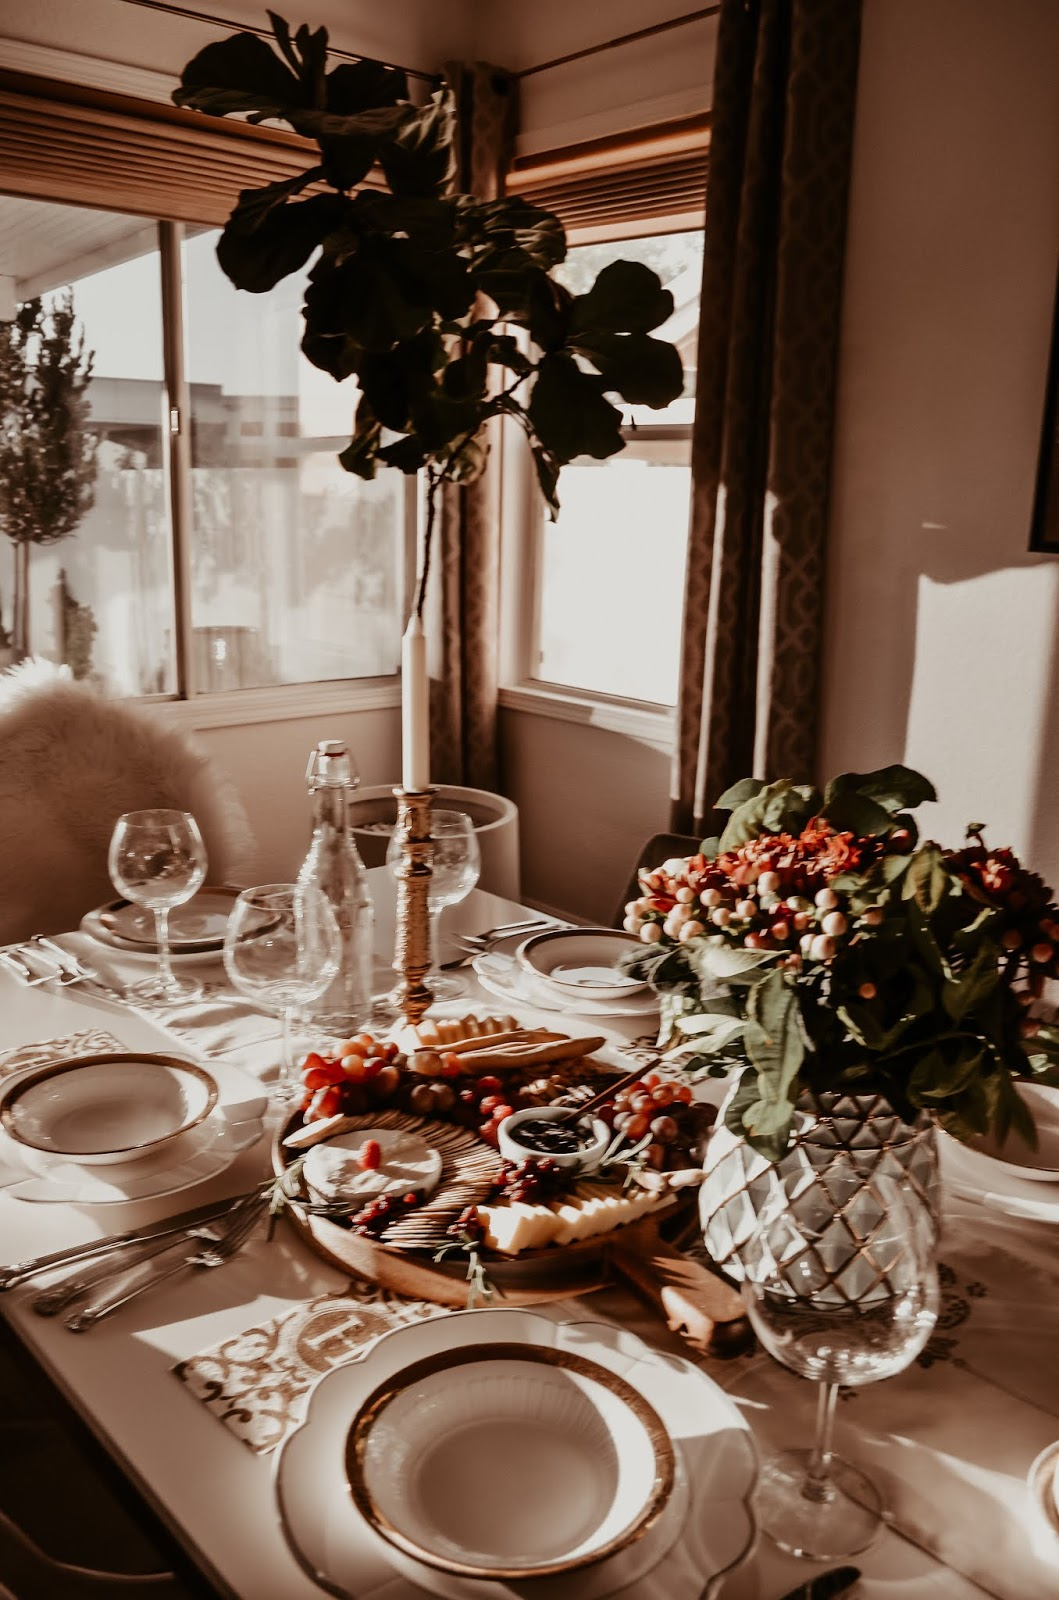 5 ways-to-host-a-thanksgiving-holiday-dinner-party-with-style